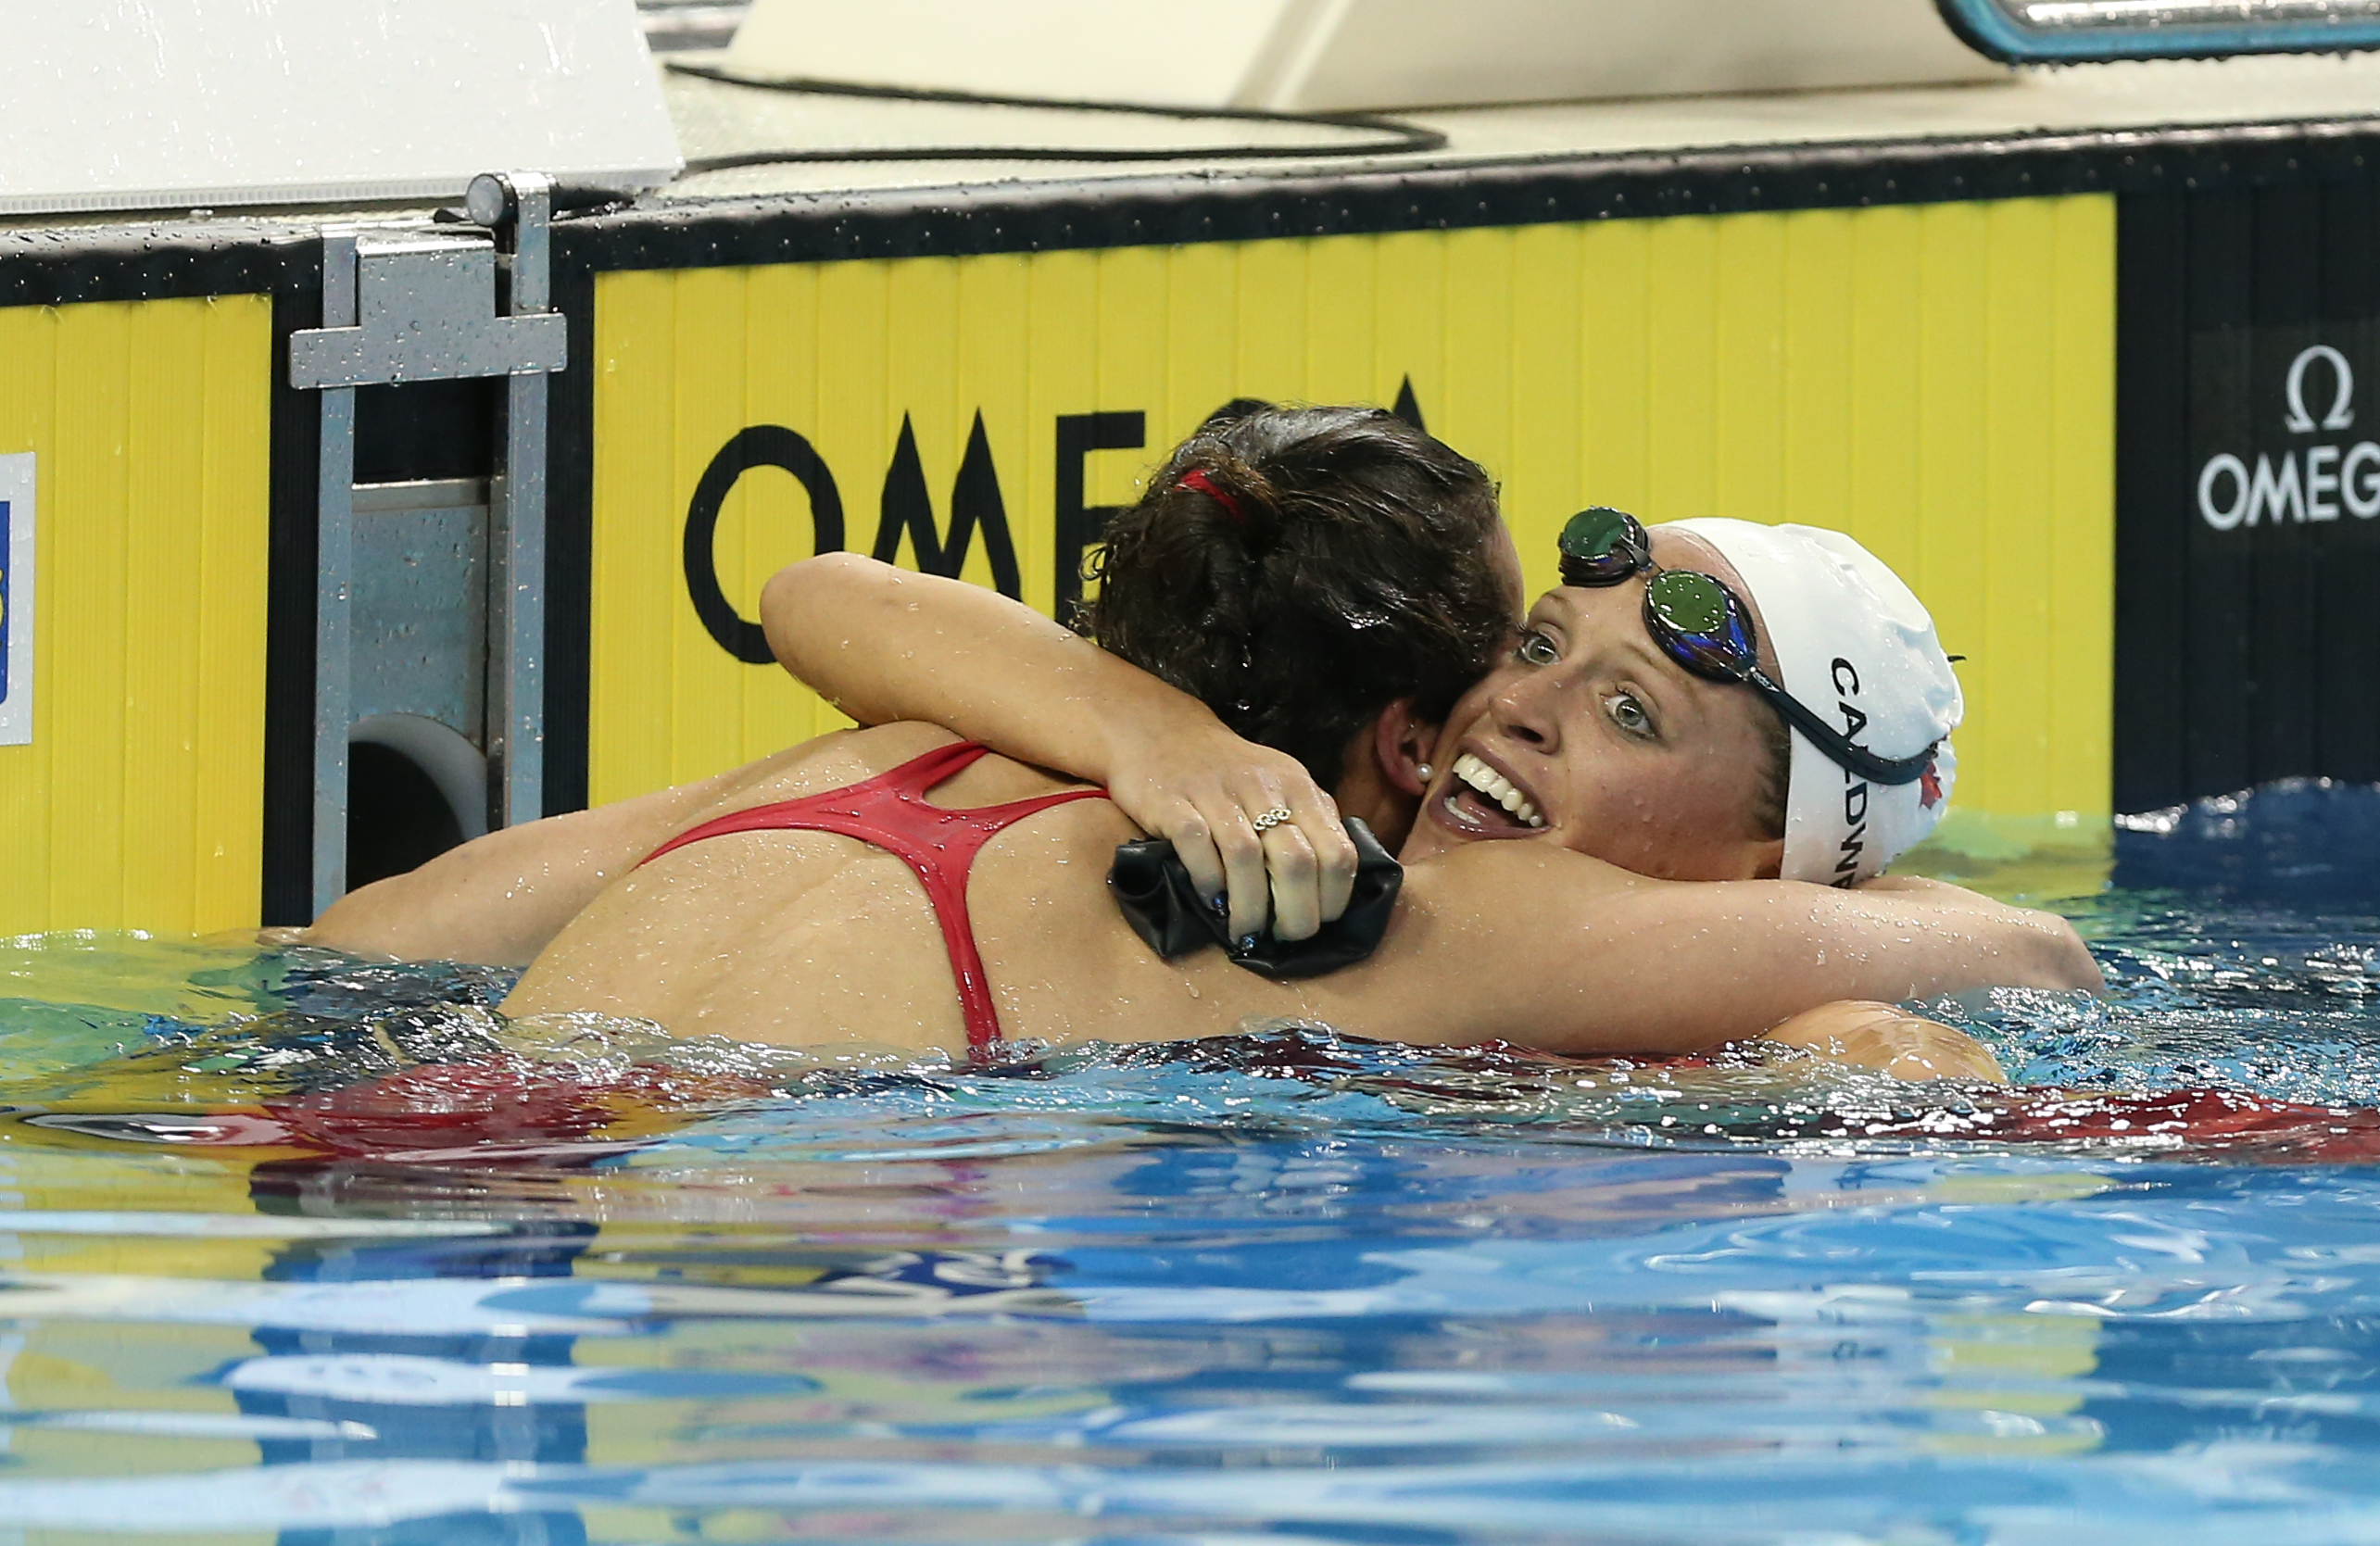 Hilary Caldwell (right) hugs a teammate after winning the 200m backstroke at Rio Trials on April 10, 2016 (Photo: Scott Grant via Swimming Canada).